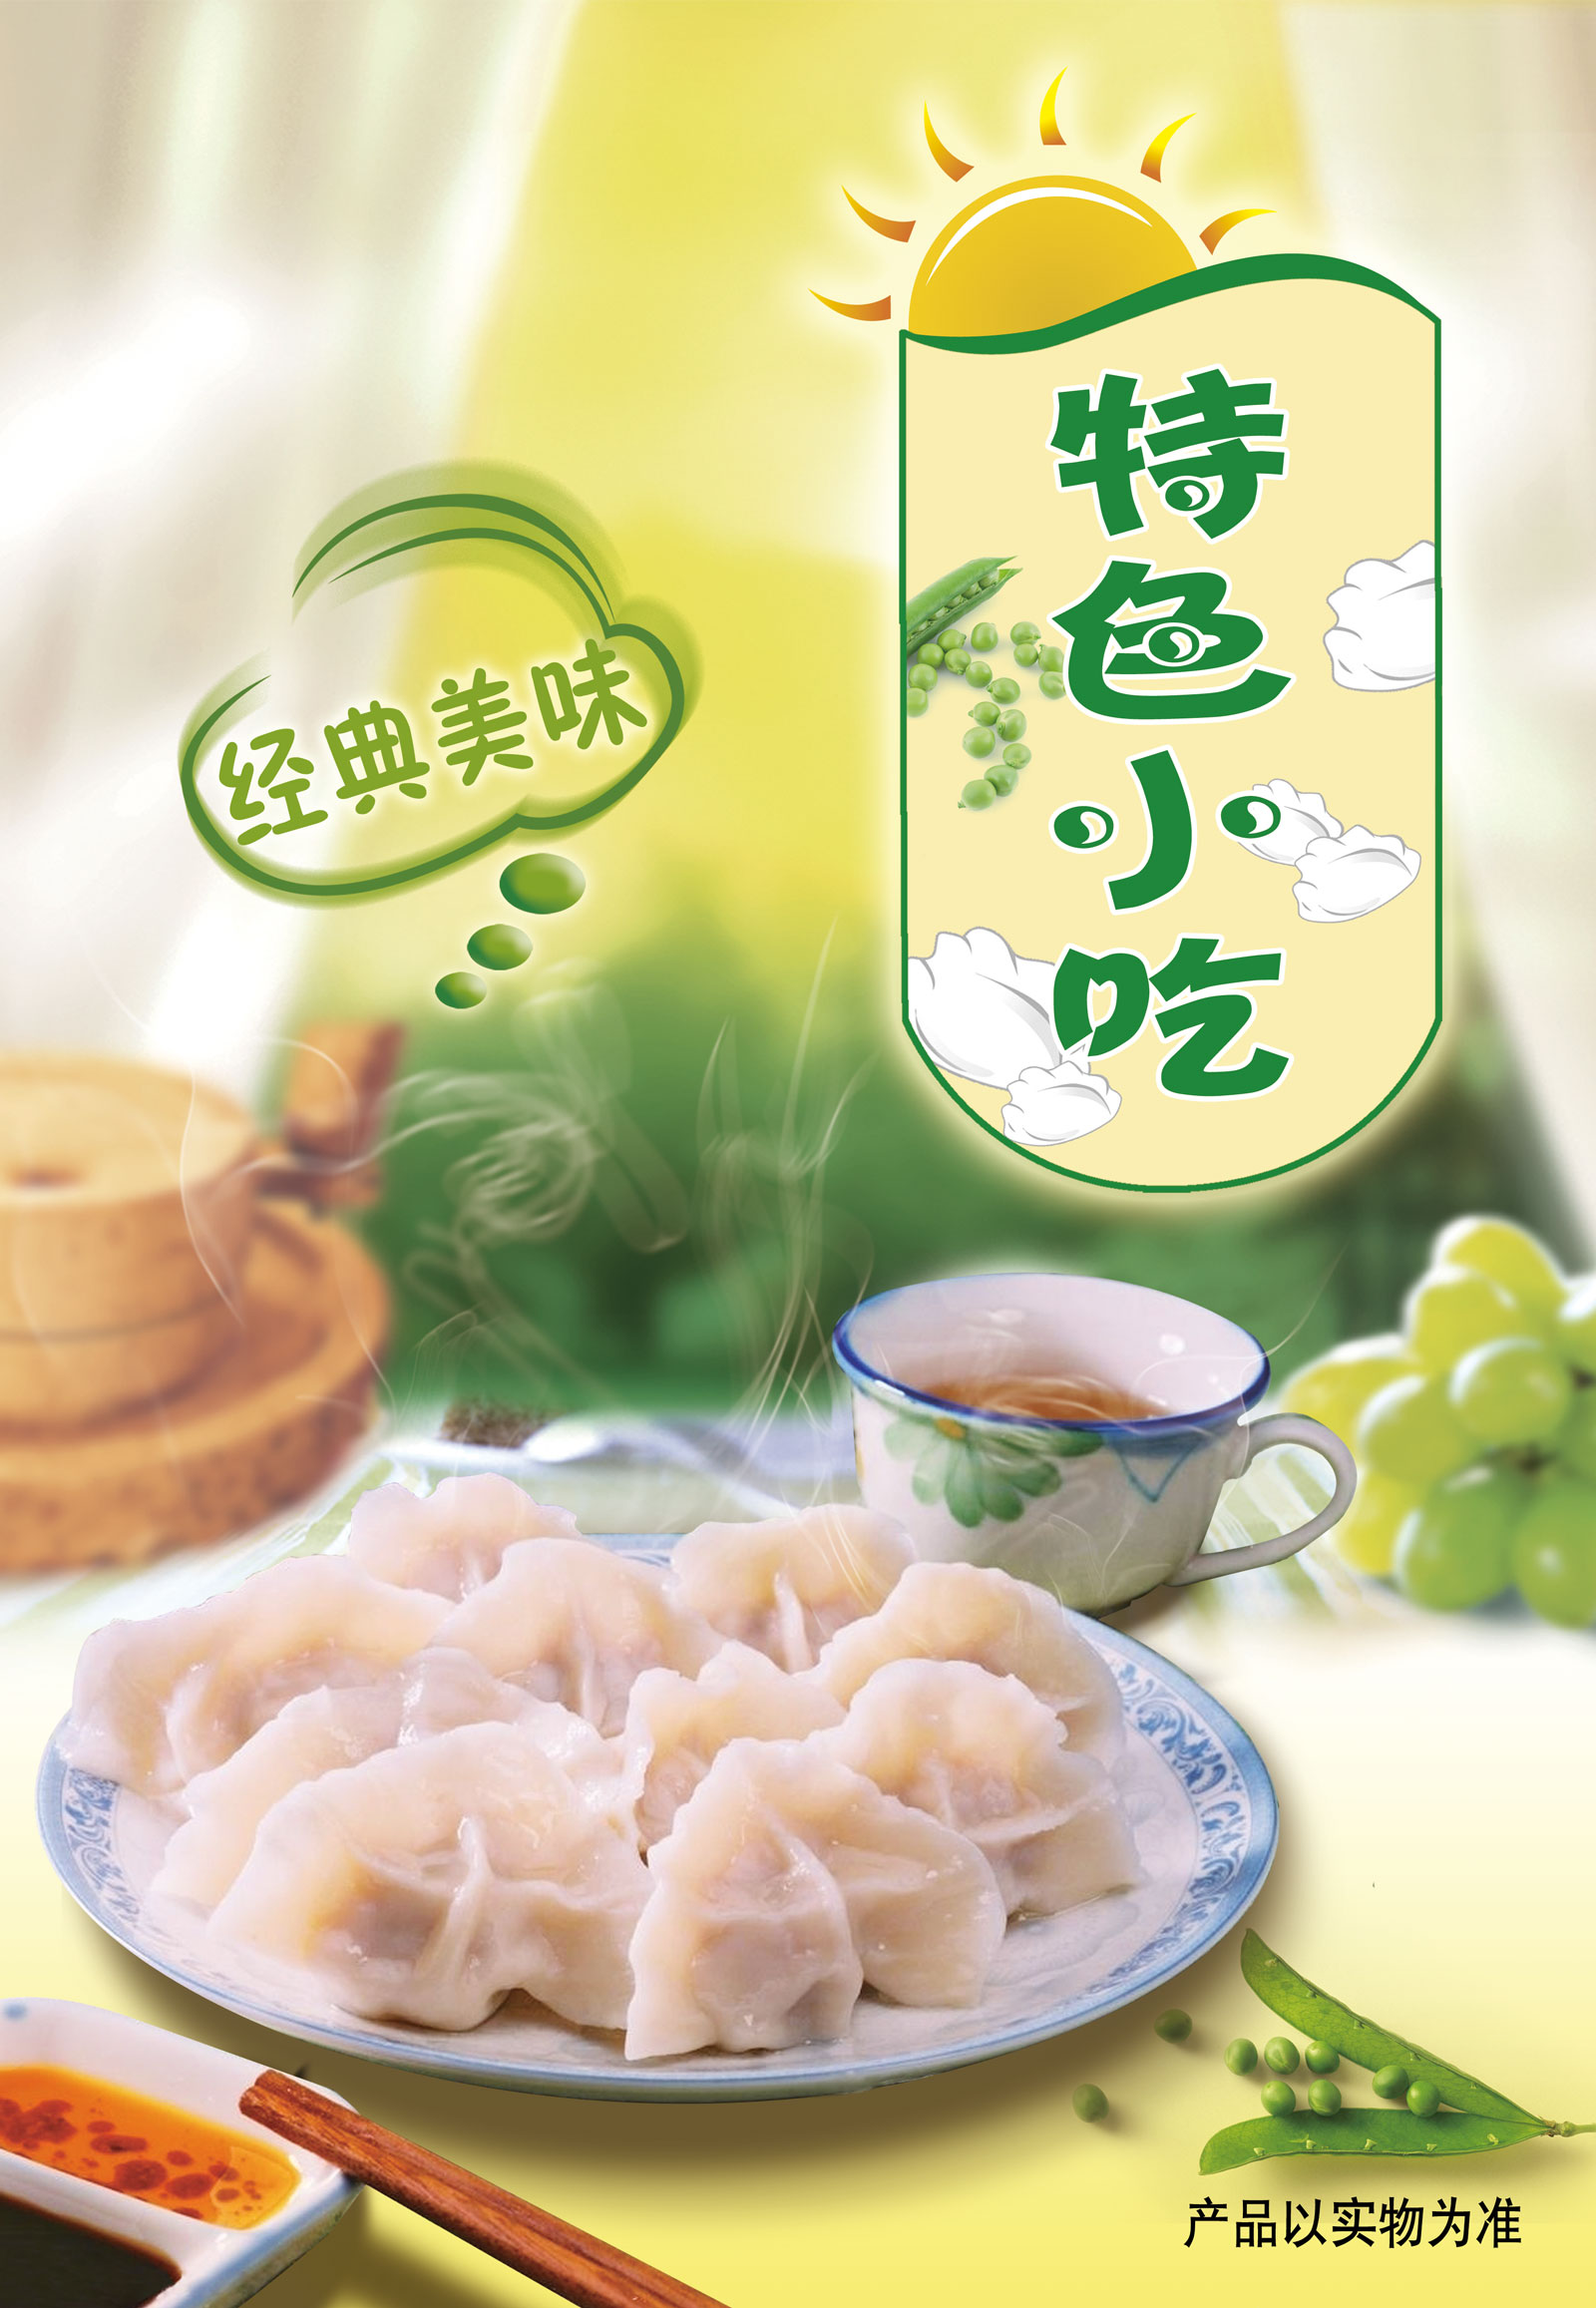 chinesefontdesign.com 2017 03 26 17 55 02 Delicious Chinese characteristics snacks poster design   China PSD File Free Download Chinese food PSD Chinese food advertising design PSD